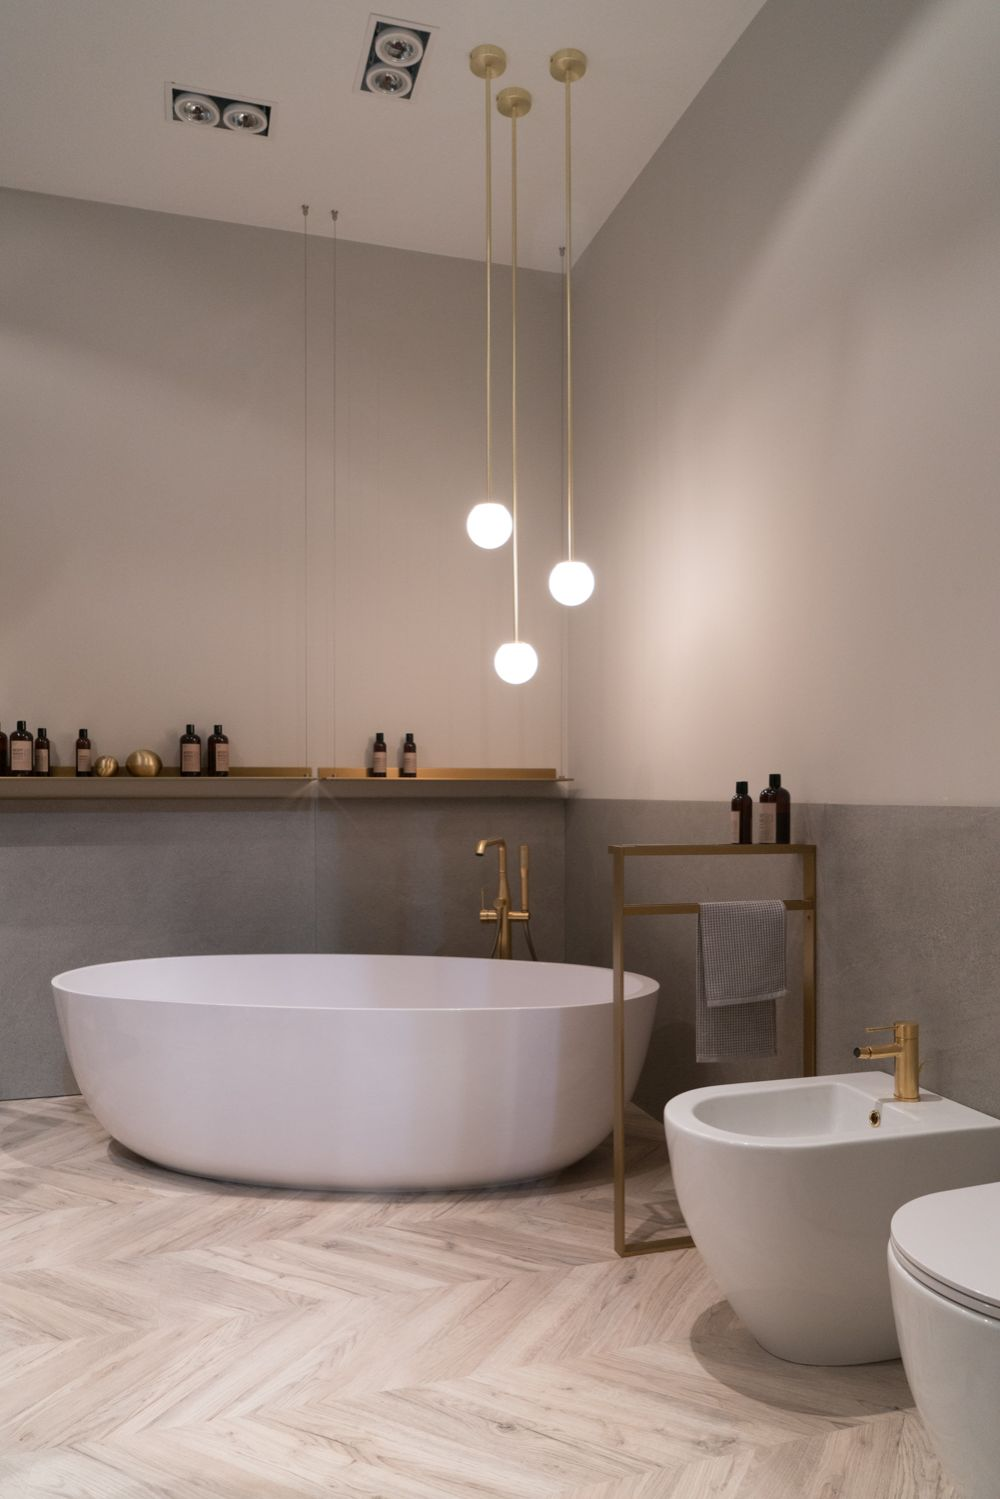 1571999335 796 some beautiful bathroom themes to consider for your next remodel - Some Beautiful Bathroom Themes To Consider For Your Next Remodel